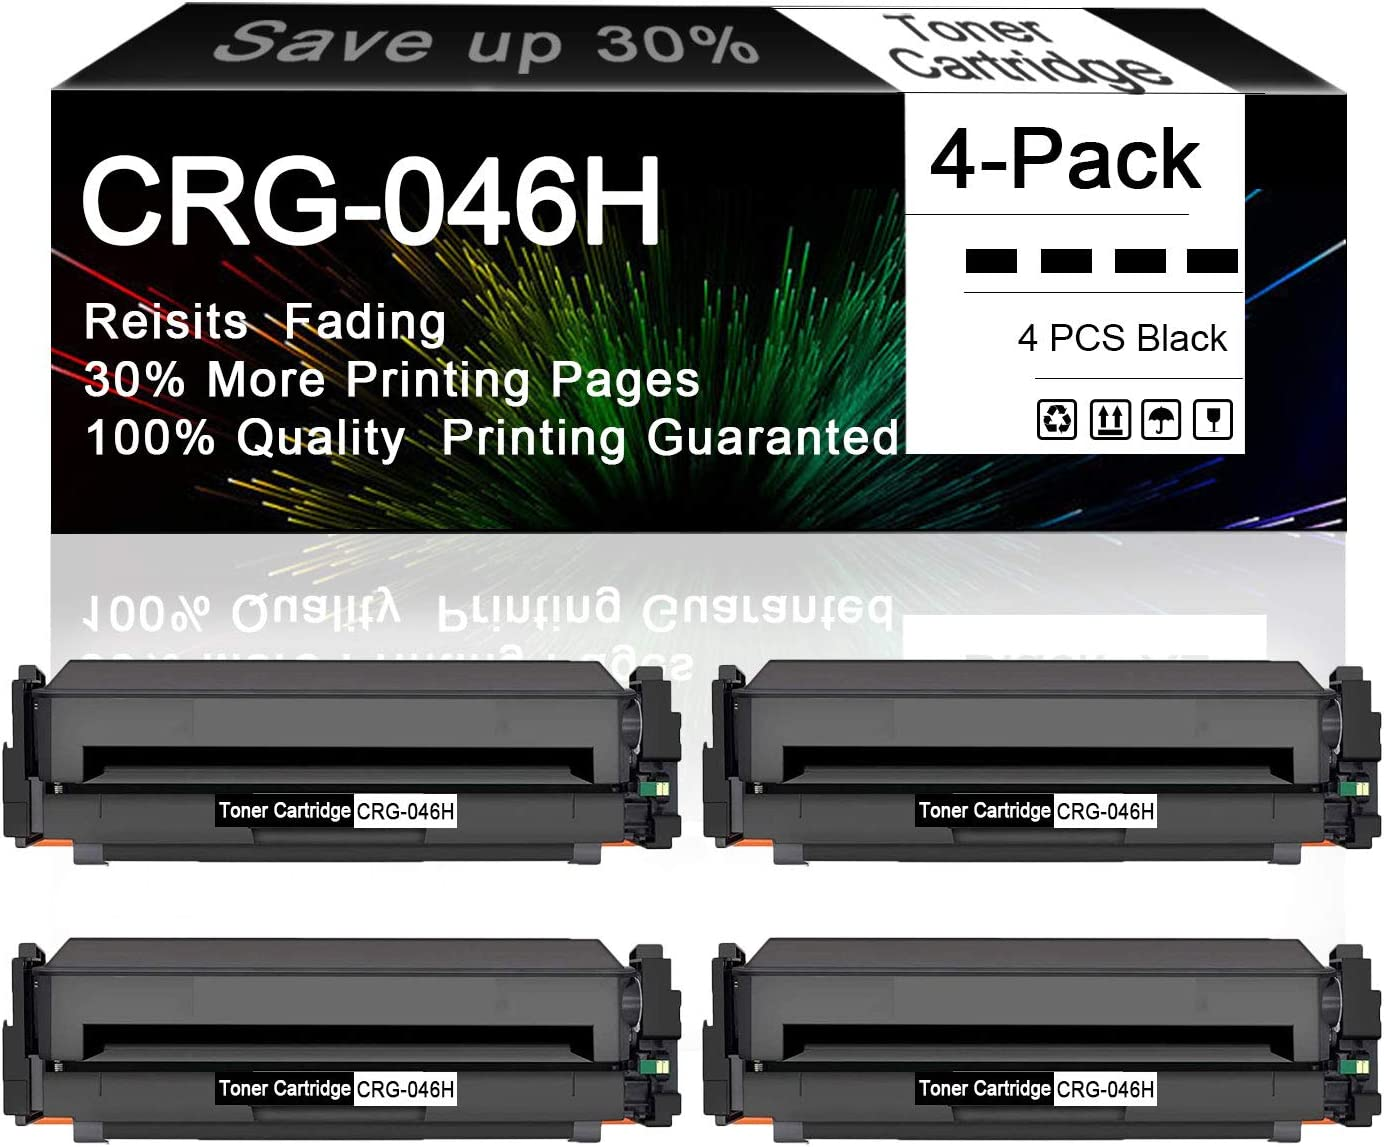 4-Pack Black 046H Compatible Toner Cartridge Replacement for Canon Color Image Class LBP654Cdw MF735Cdw MF731Cdw MF733Cdw Printers.